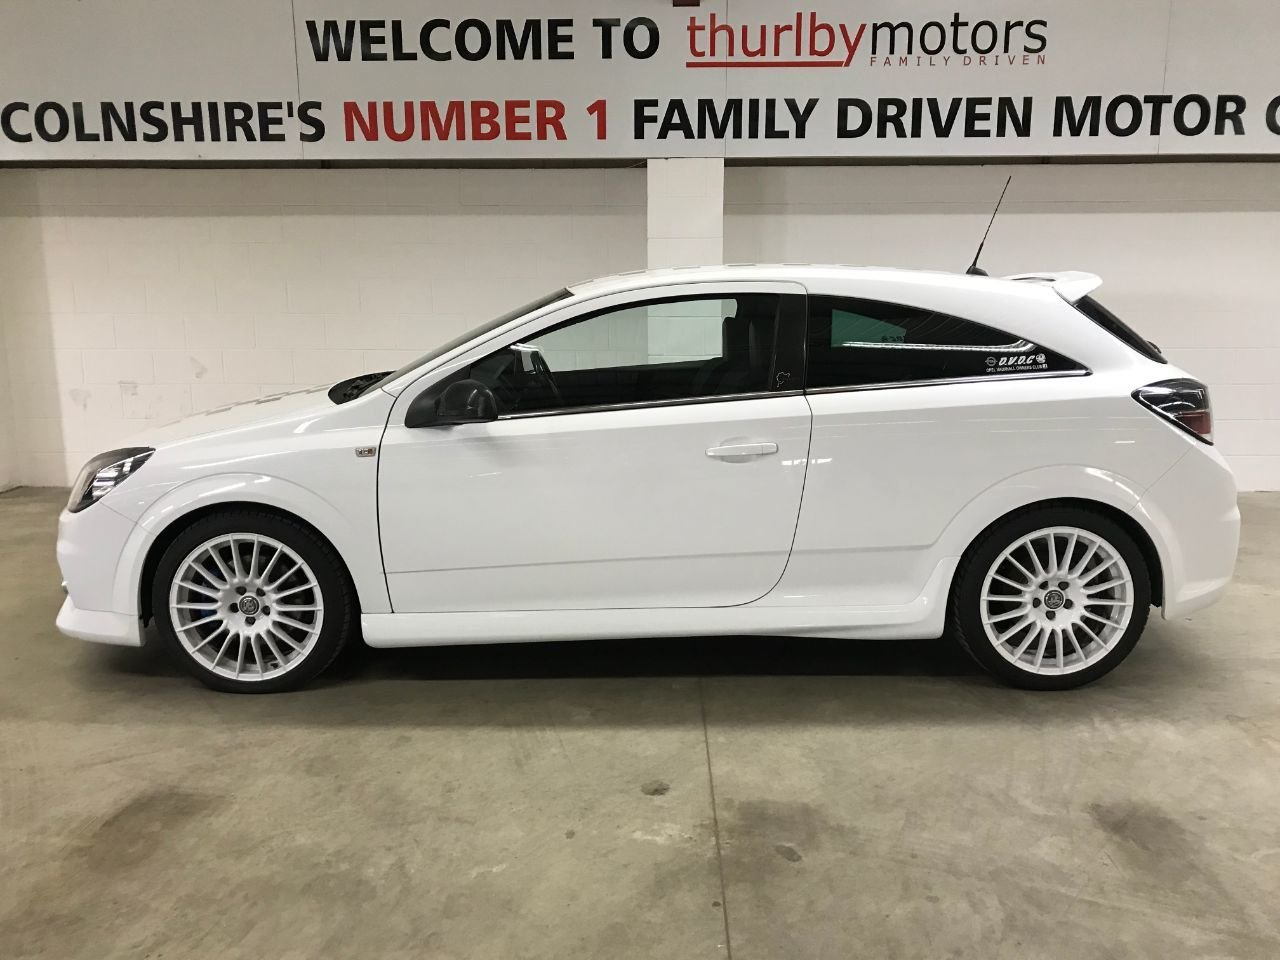 2008 VAUXHALL ASTRA VXR NURBURGRING For Sale (picture 4 of 5)